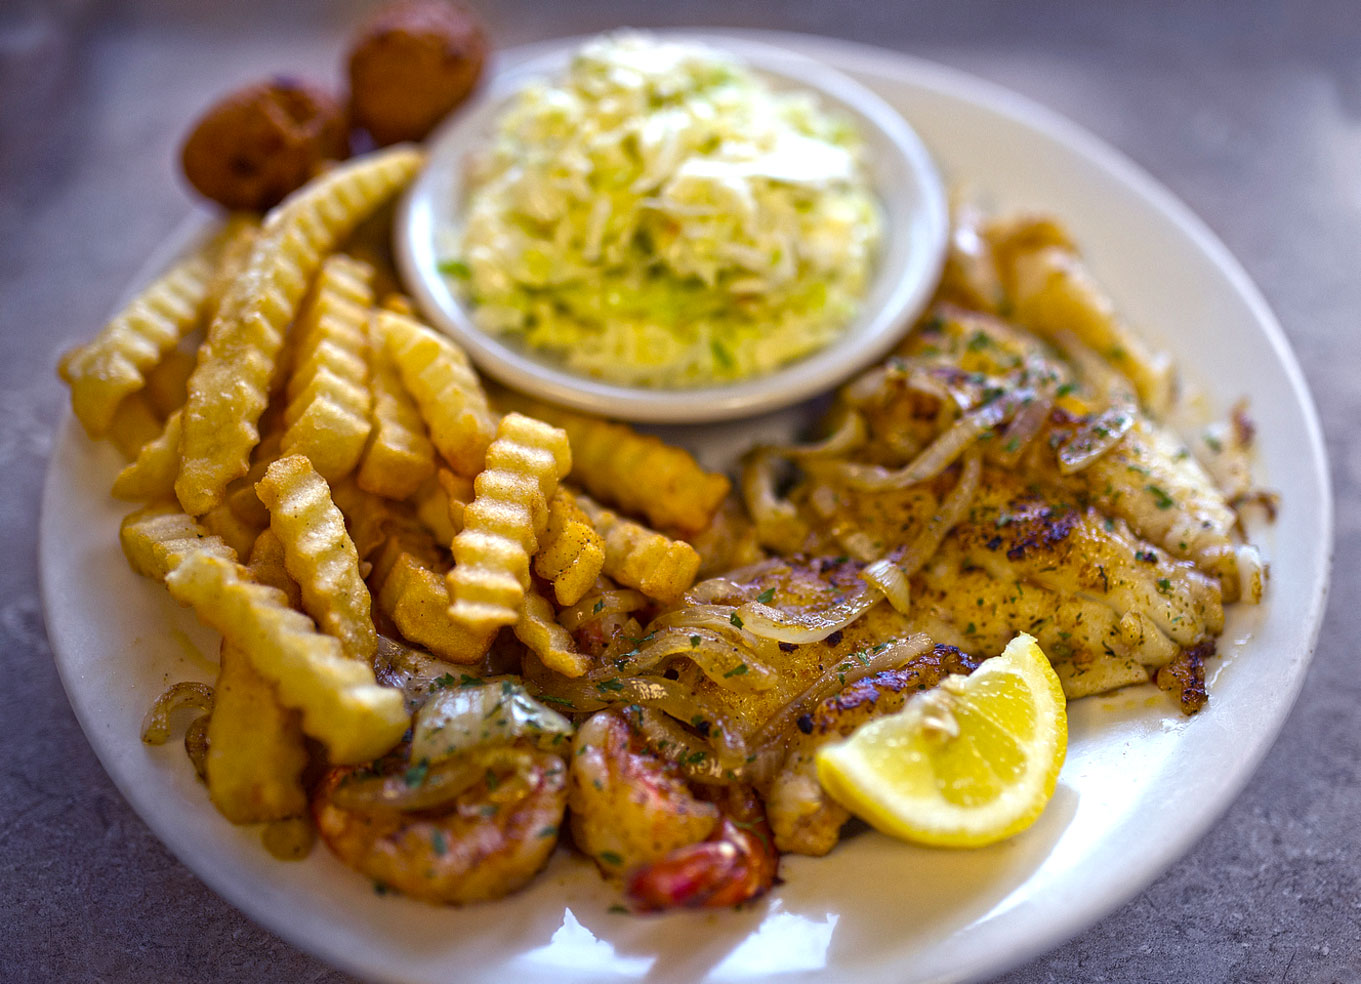 Grilled Grouper and Shrimp Plate